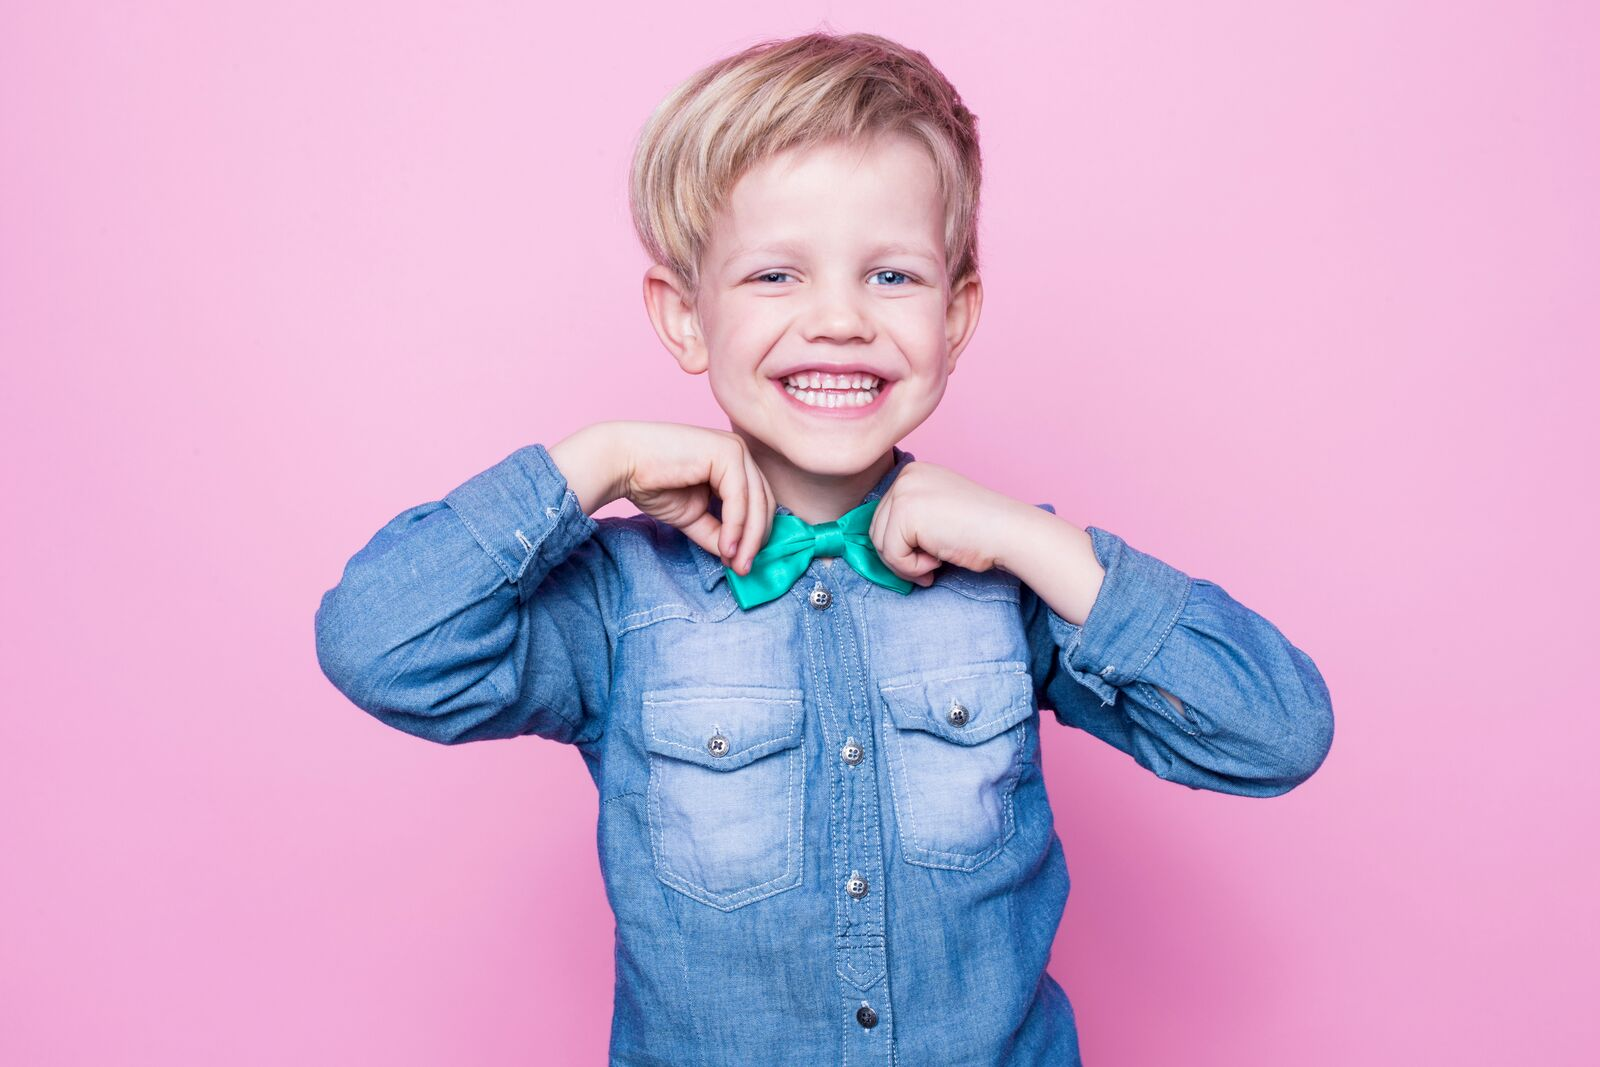 Washington DC Pediatric Dentist | Is Your Child Excited to Visit Us?